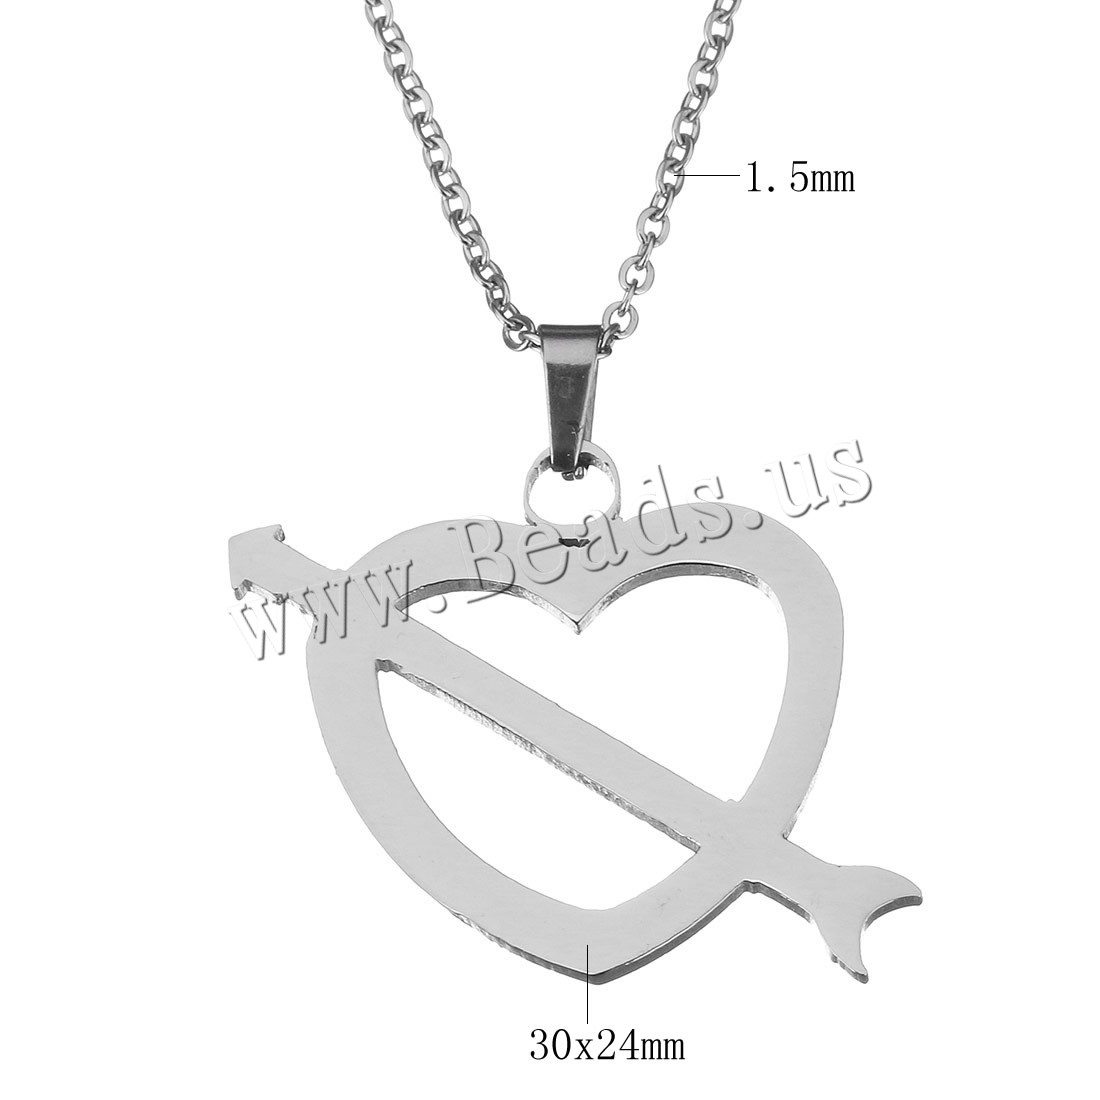 Buy Stainless Steel Jewelry Necklace Heart oval chain & woman original color 30x24mm 1.5mm Sold Per Approx 19 Inch Strand